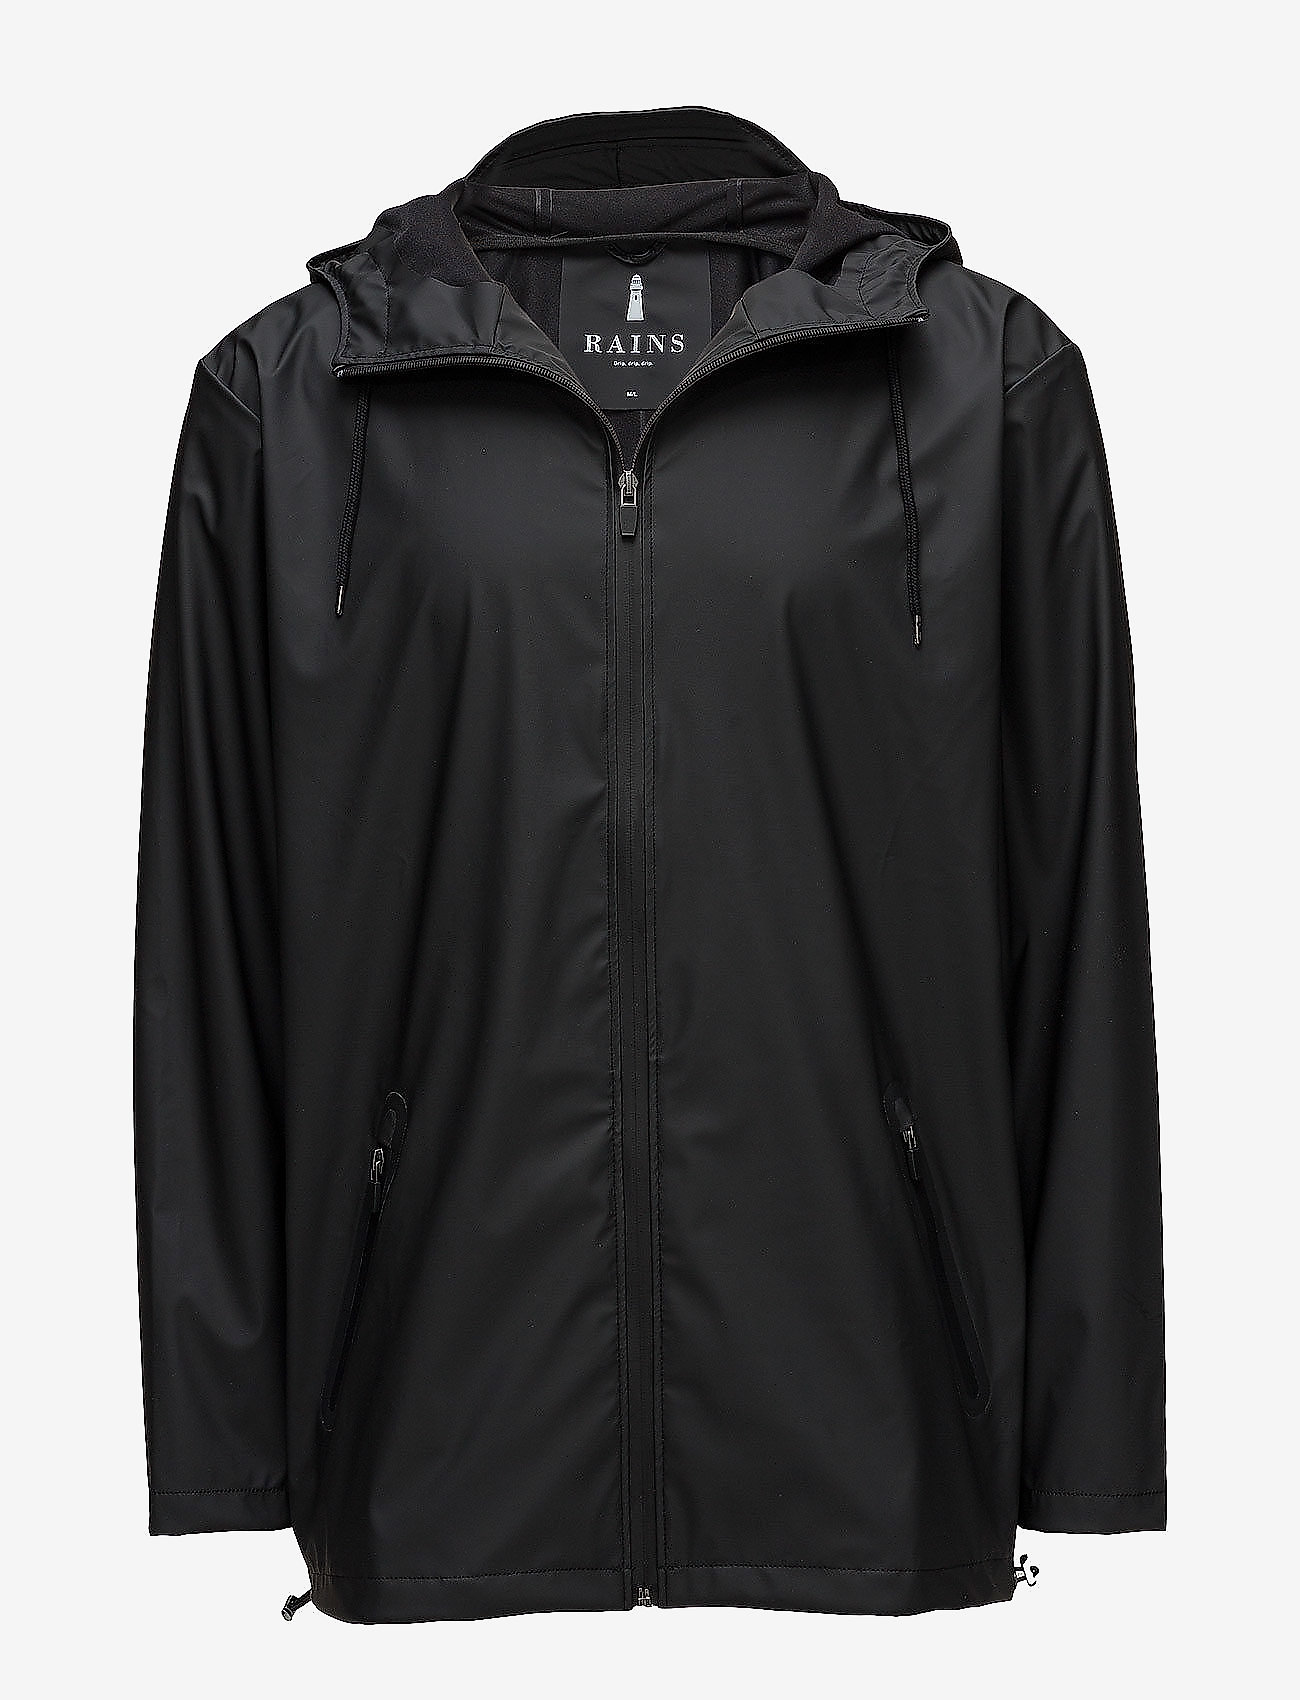 Rains - Breaker - rainwear - 01 black